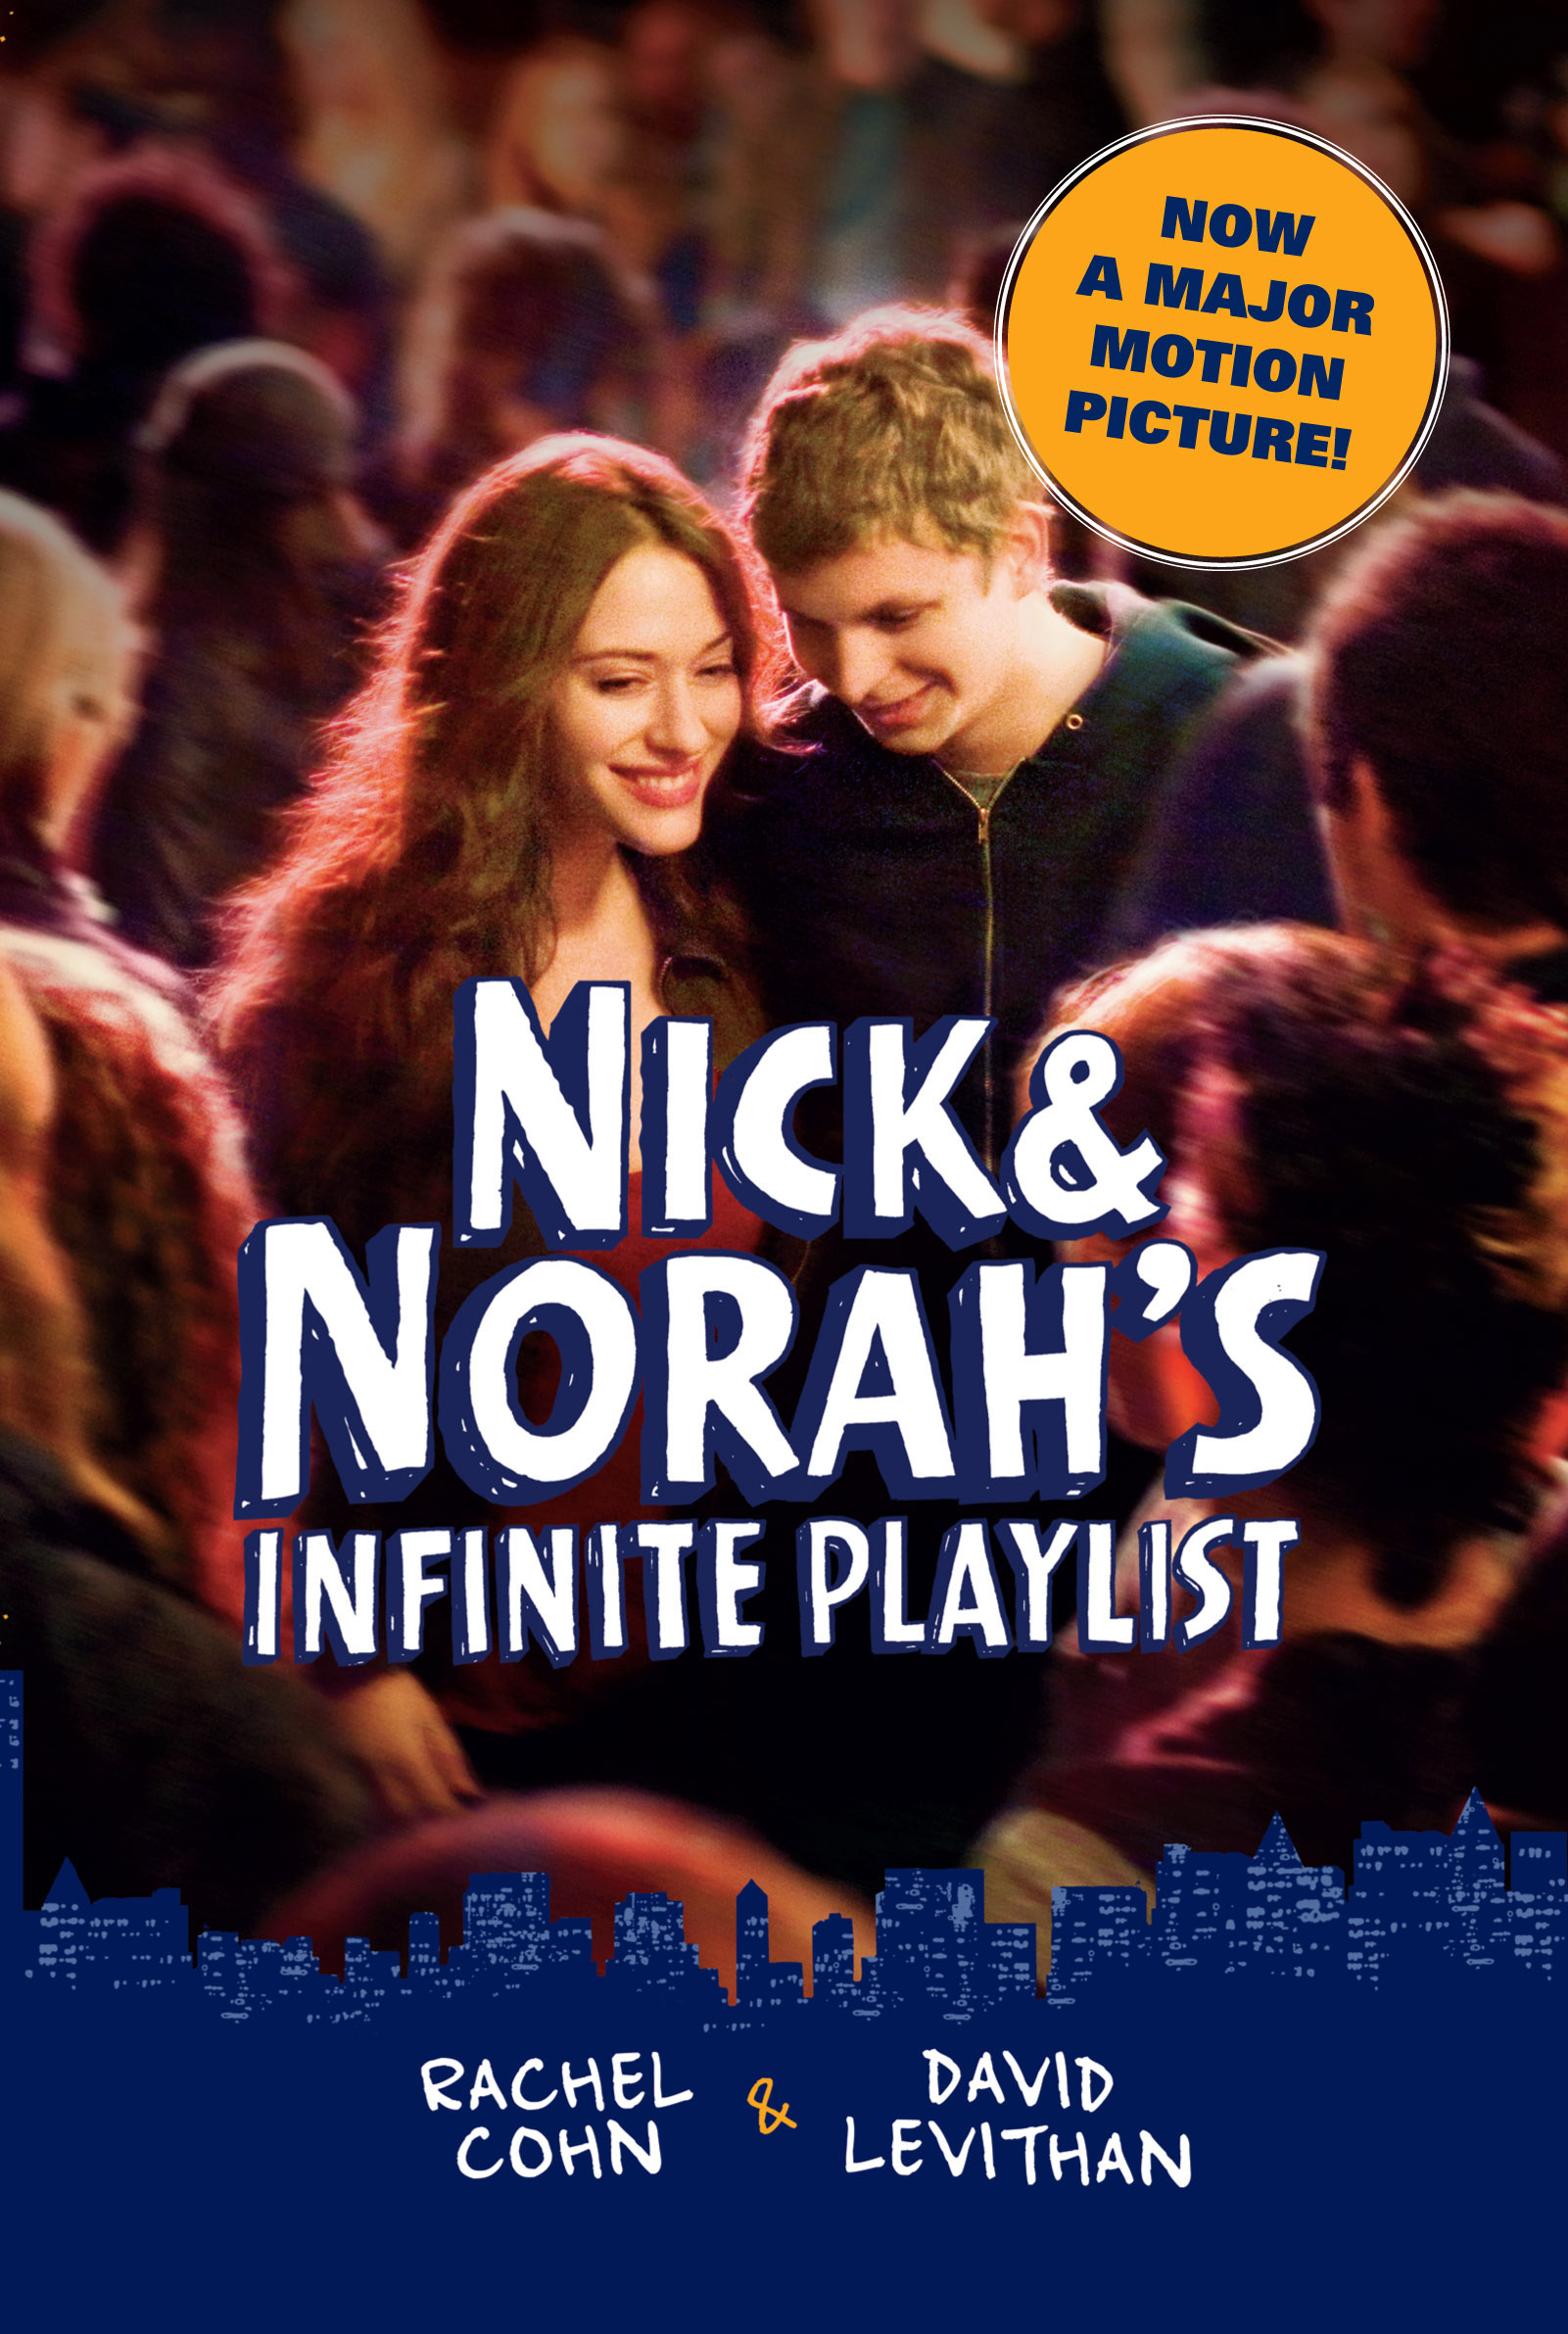 Nick And Norah's Infinite Playlist Backgrounds, Compatible - PC, Mobile, Gadgets| 1601x2383 px